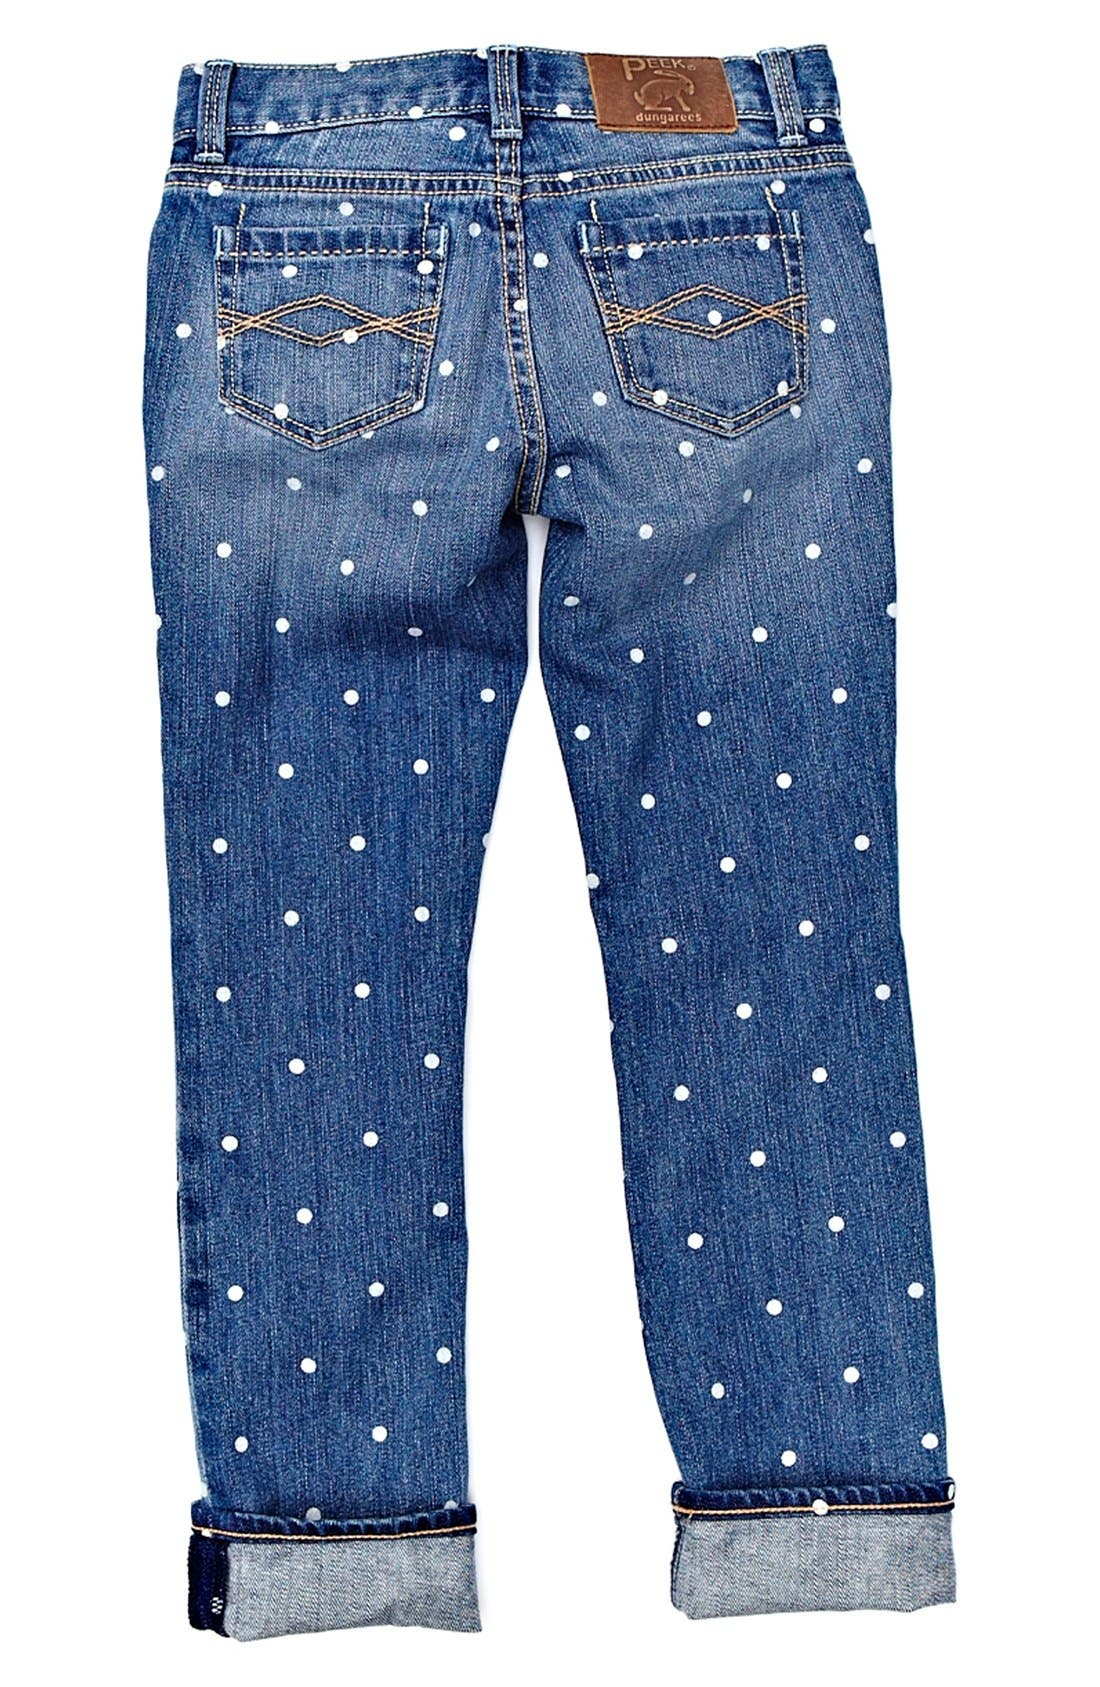 Main Image - Peek 'Audrey - Dot' Jeans (Toddler Girls, Little Girls & Big Girls)